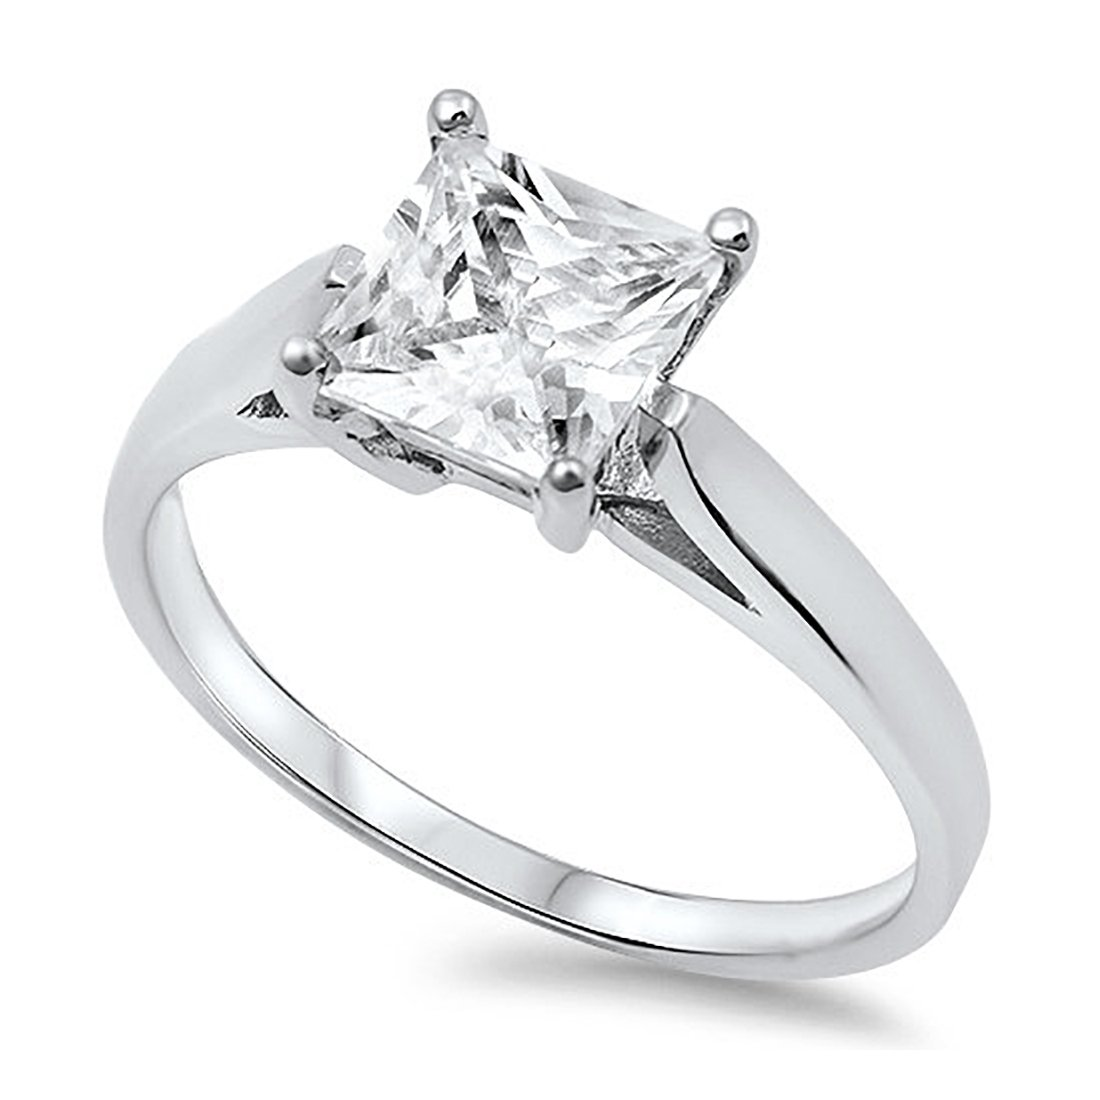 Solitaire Wedding Engagement Bridal Ring Princess Cut Square Cubic Zirconia 925 Sterling Silver-SIZE 5